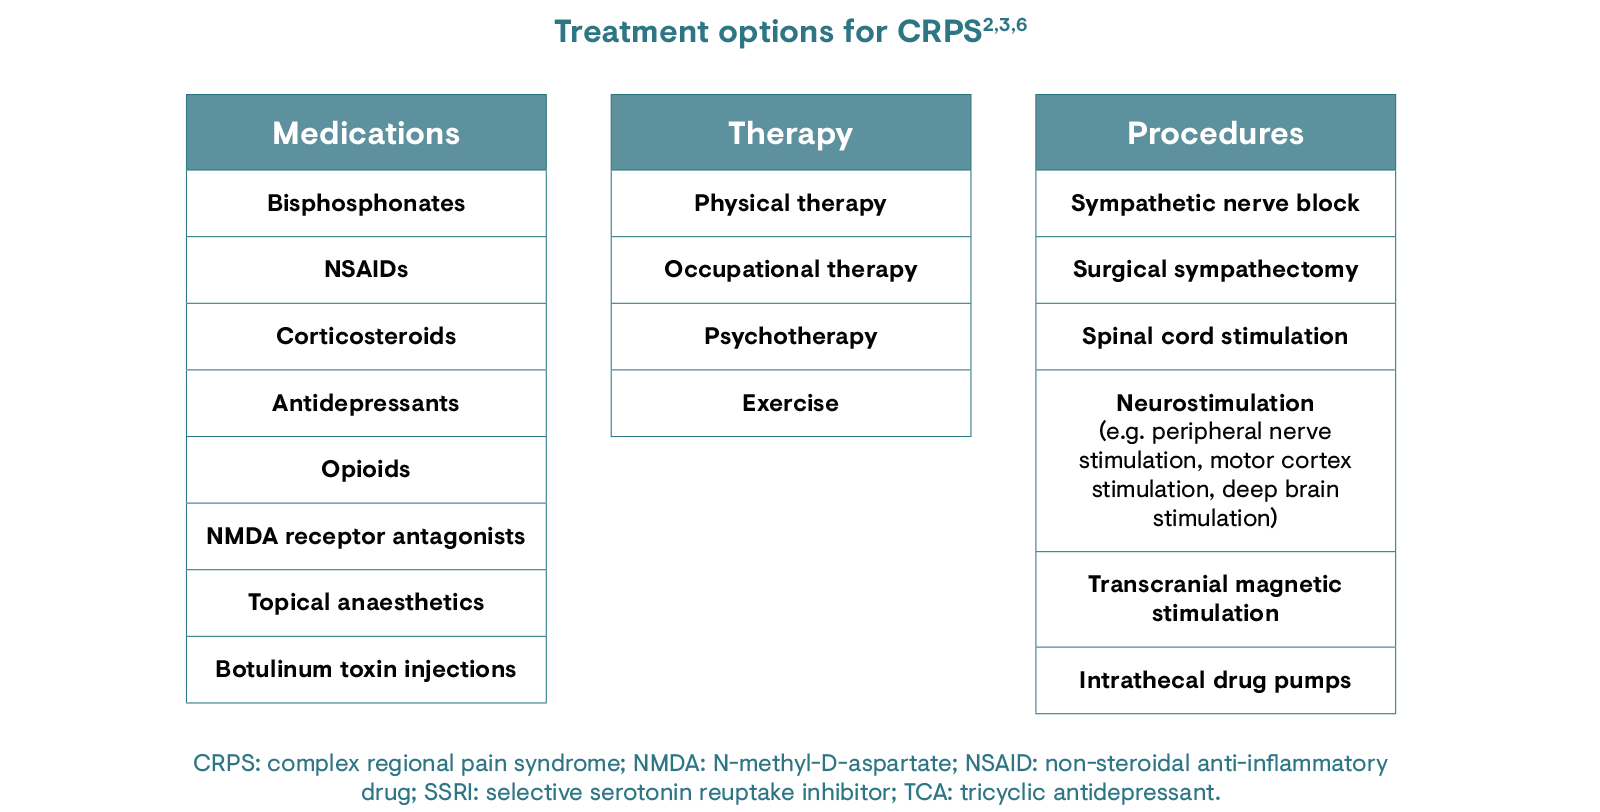 Treatment options for CRPS